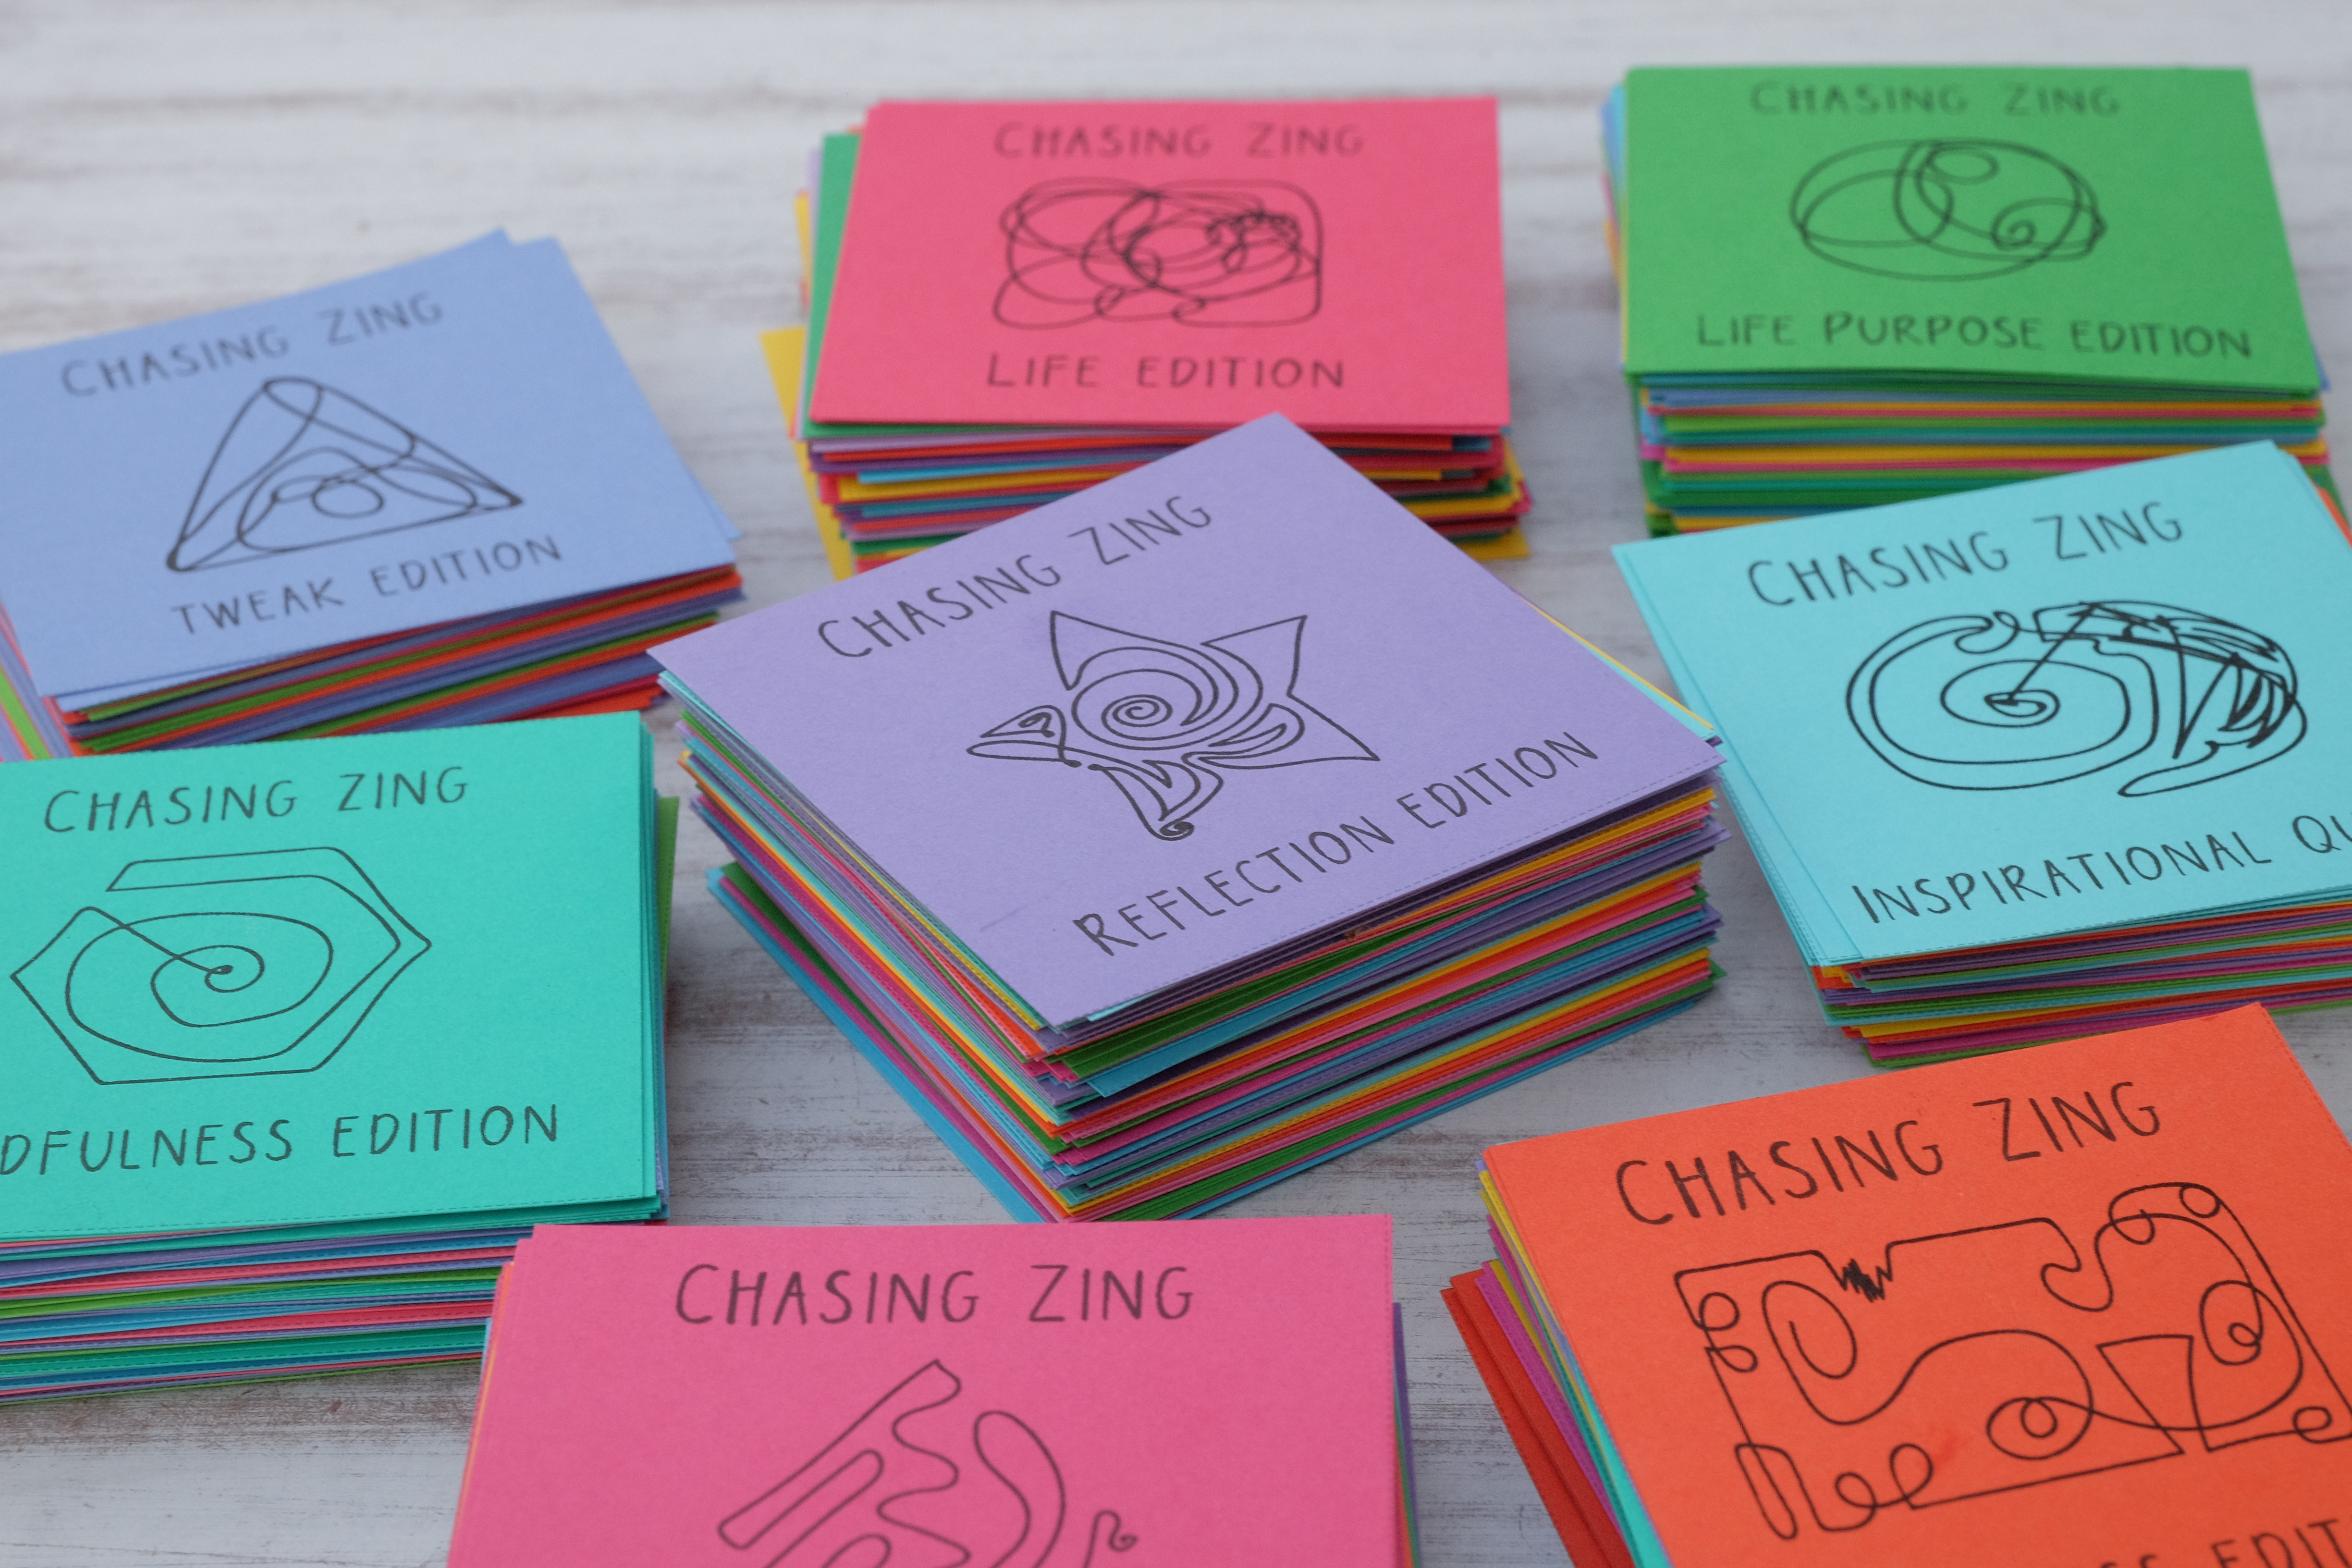 chasing zing reflection cards product image